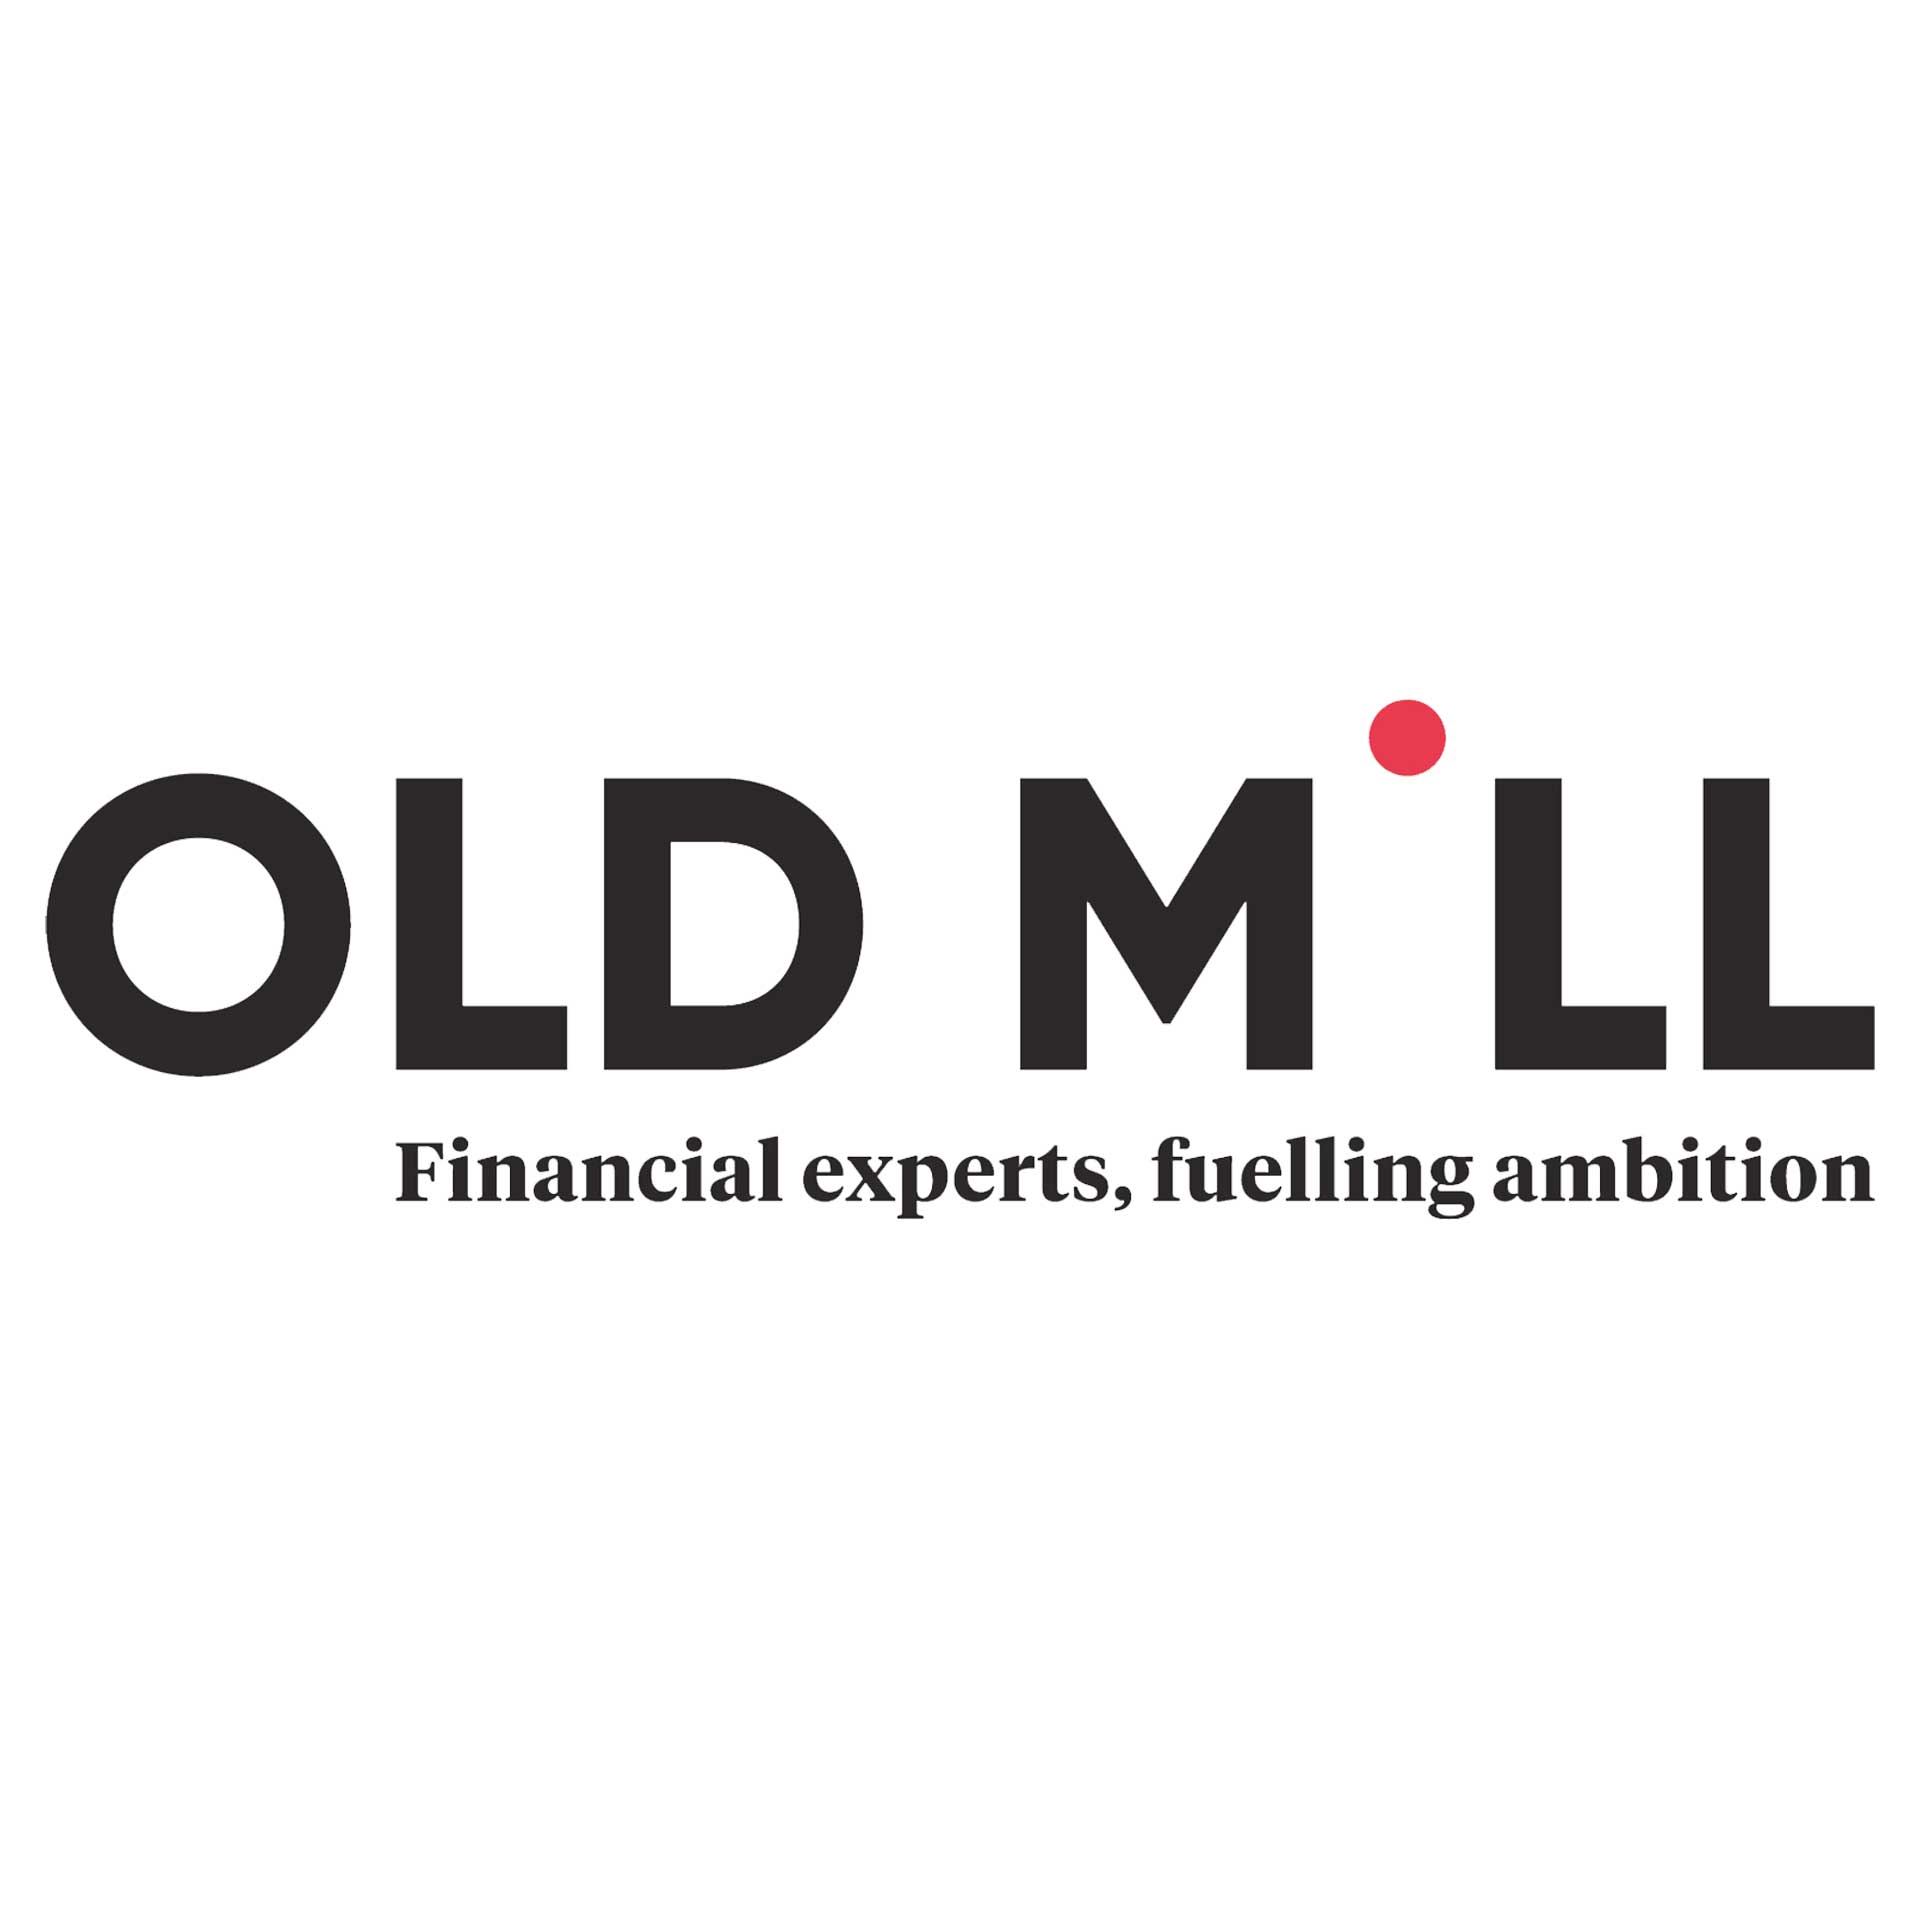 Old Mill Logo Training and upskilling staff